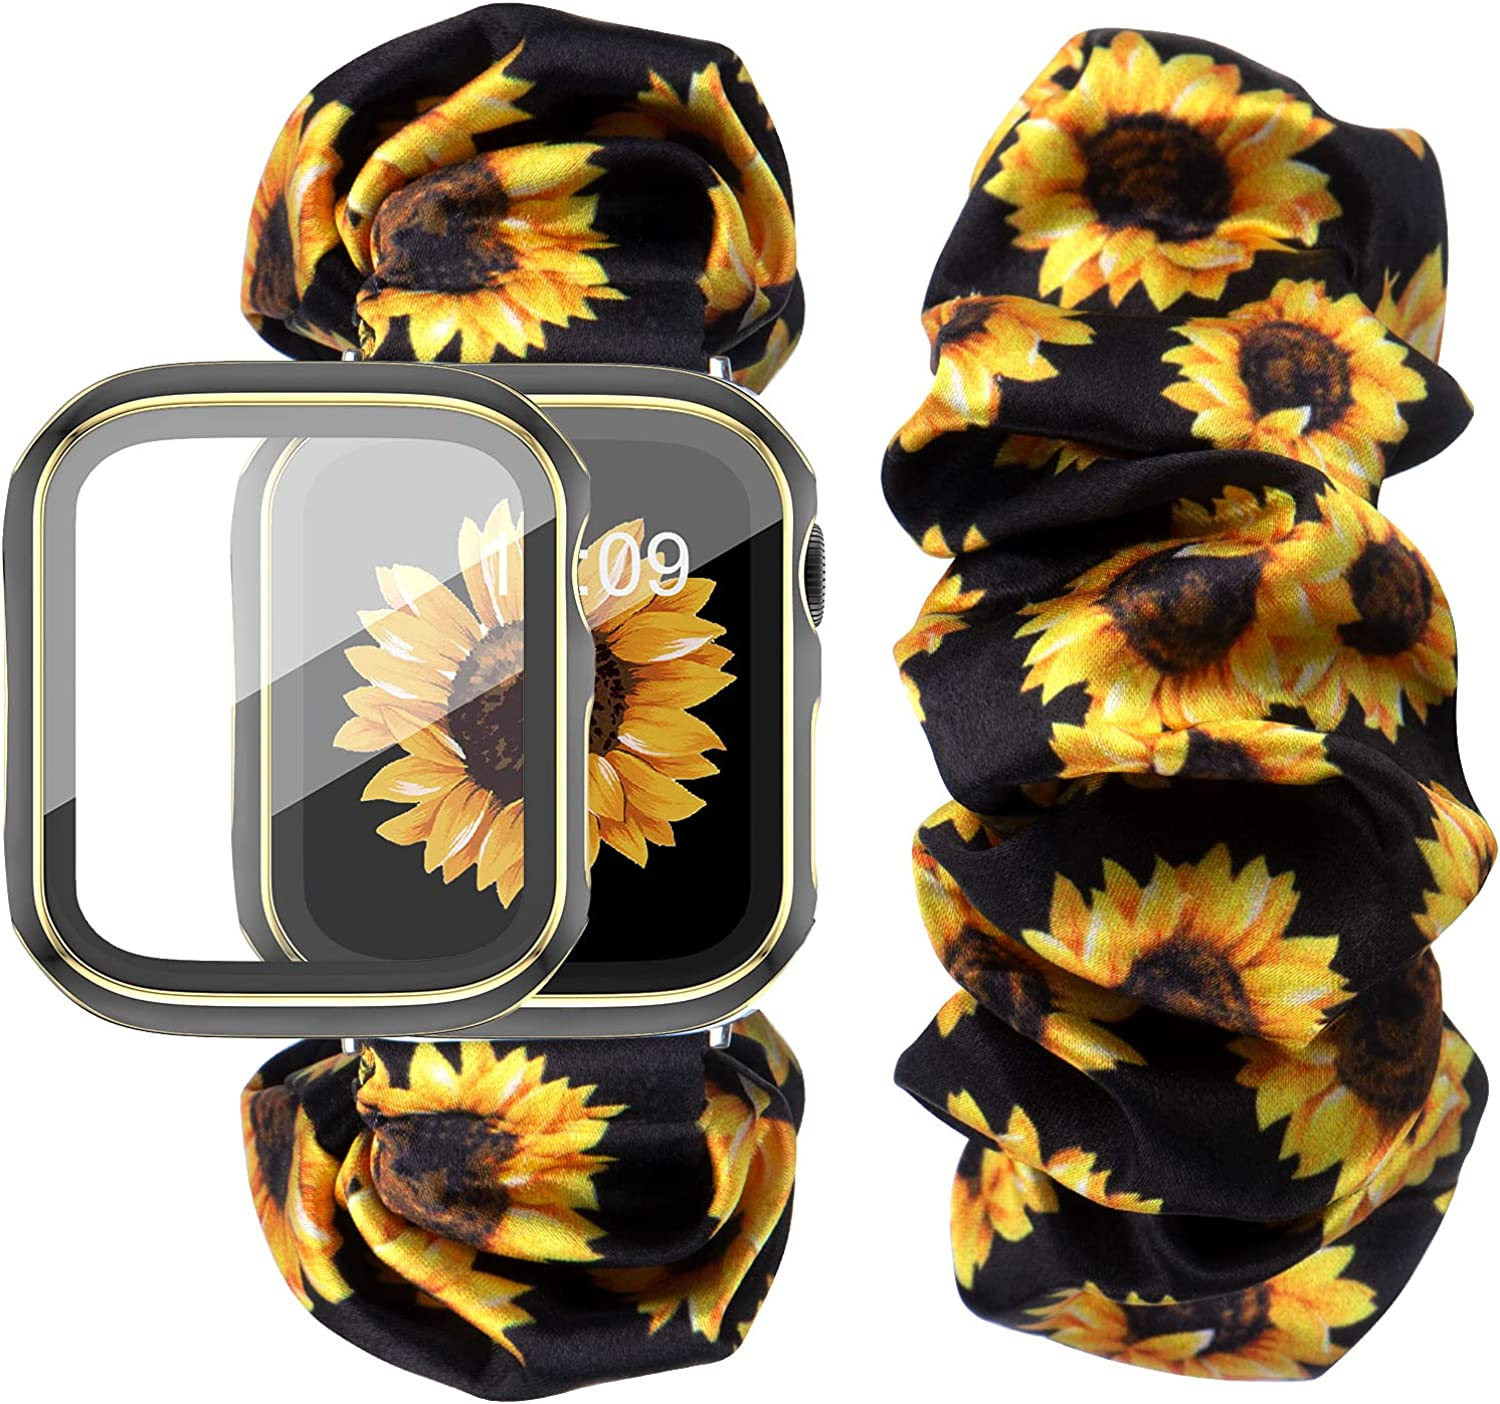 DABAOZA Compatible for Apple Watch Band 38mm 42mm with Case, Women Soft Scrunchie Sunflower Elastic Flower Pattern Replacement Wristband for iWatch Band Series 3/2/1